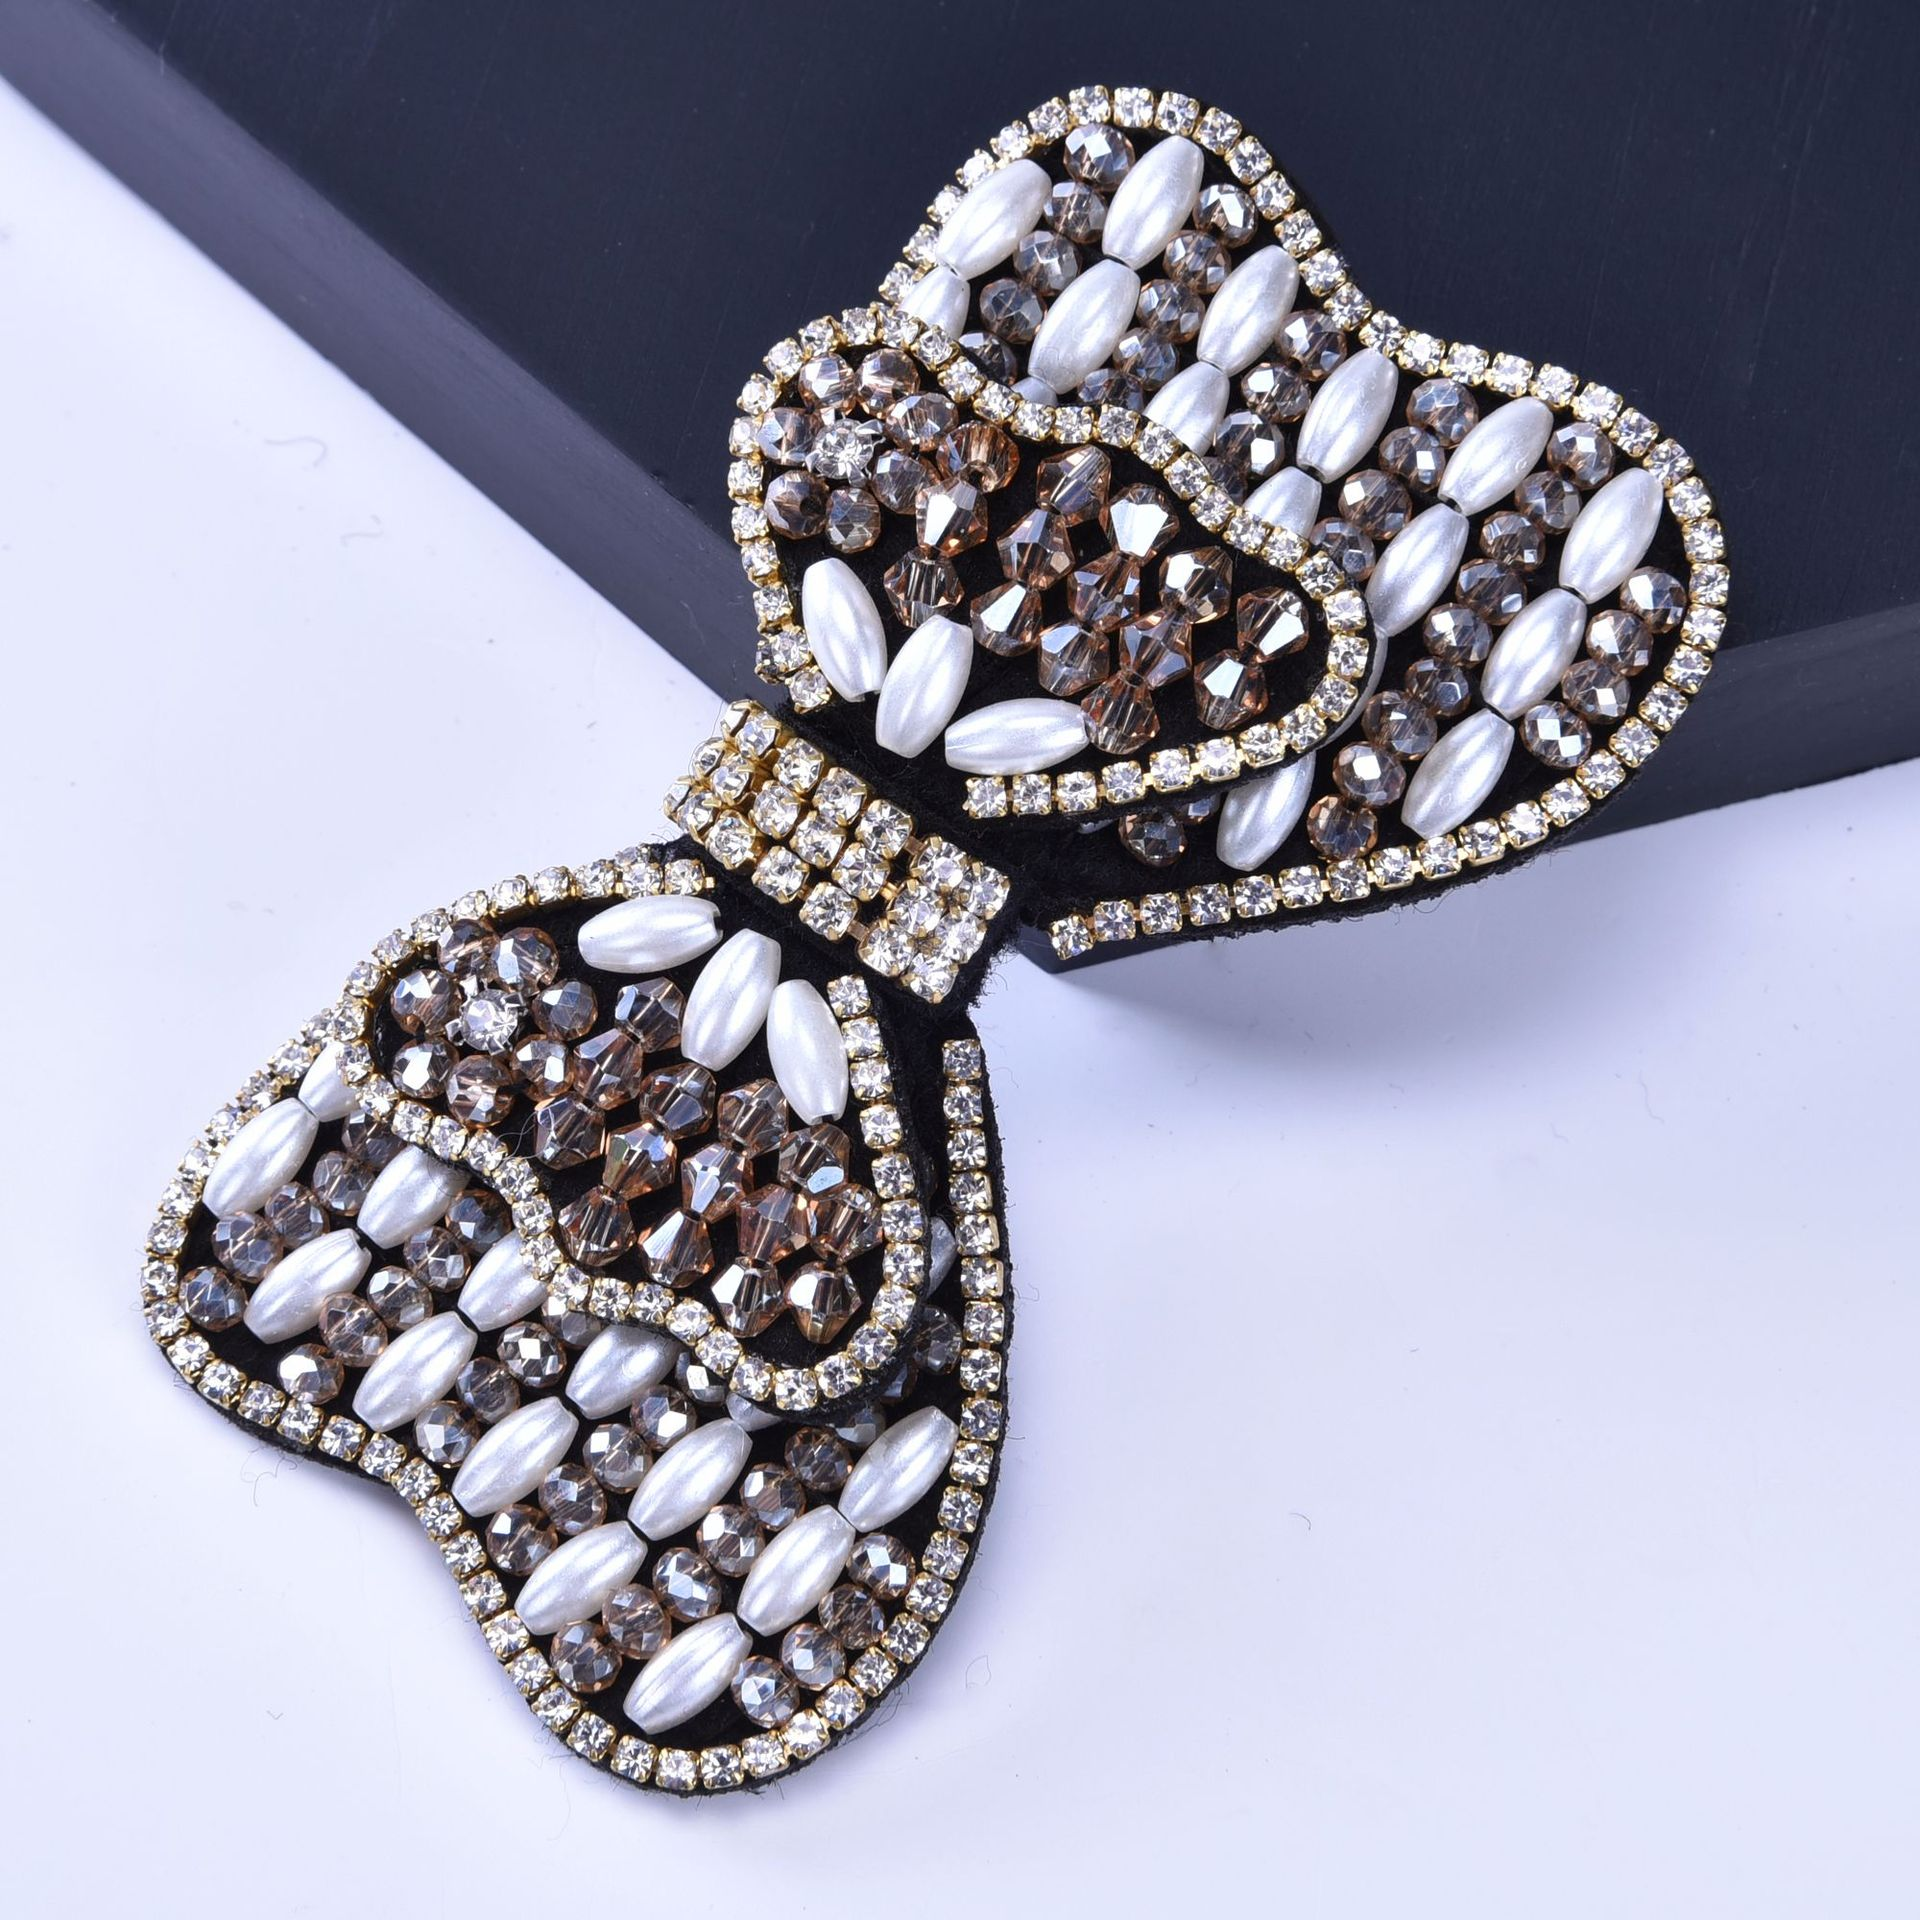 Fashion bags shoes and accessories glass beads shoe accessory